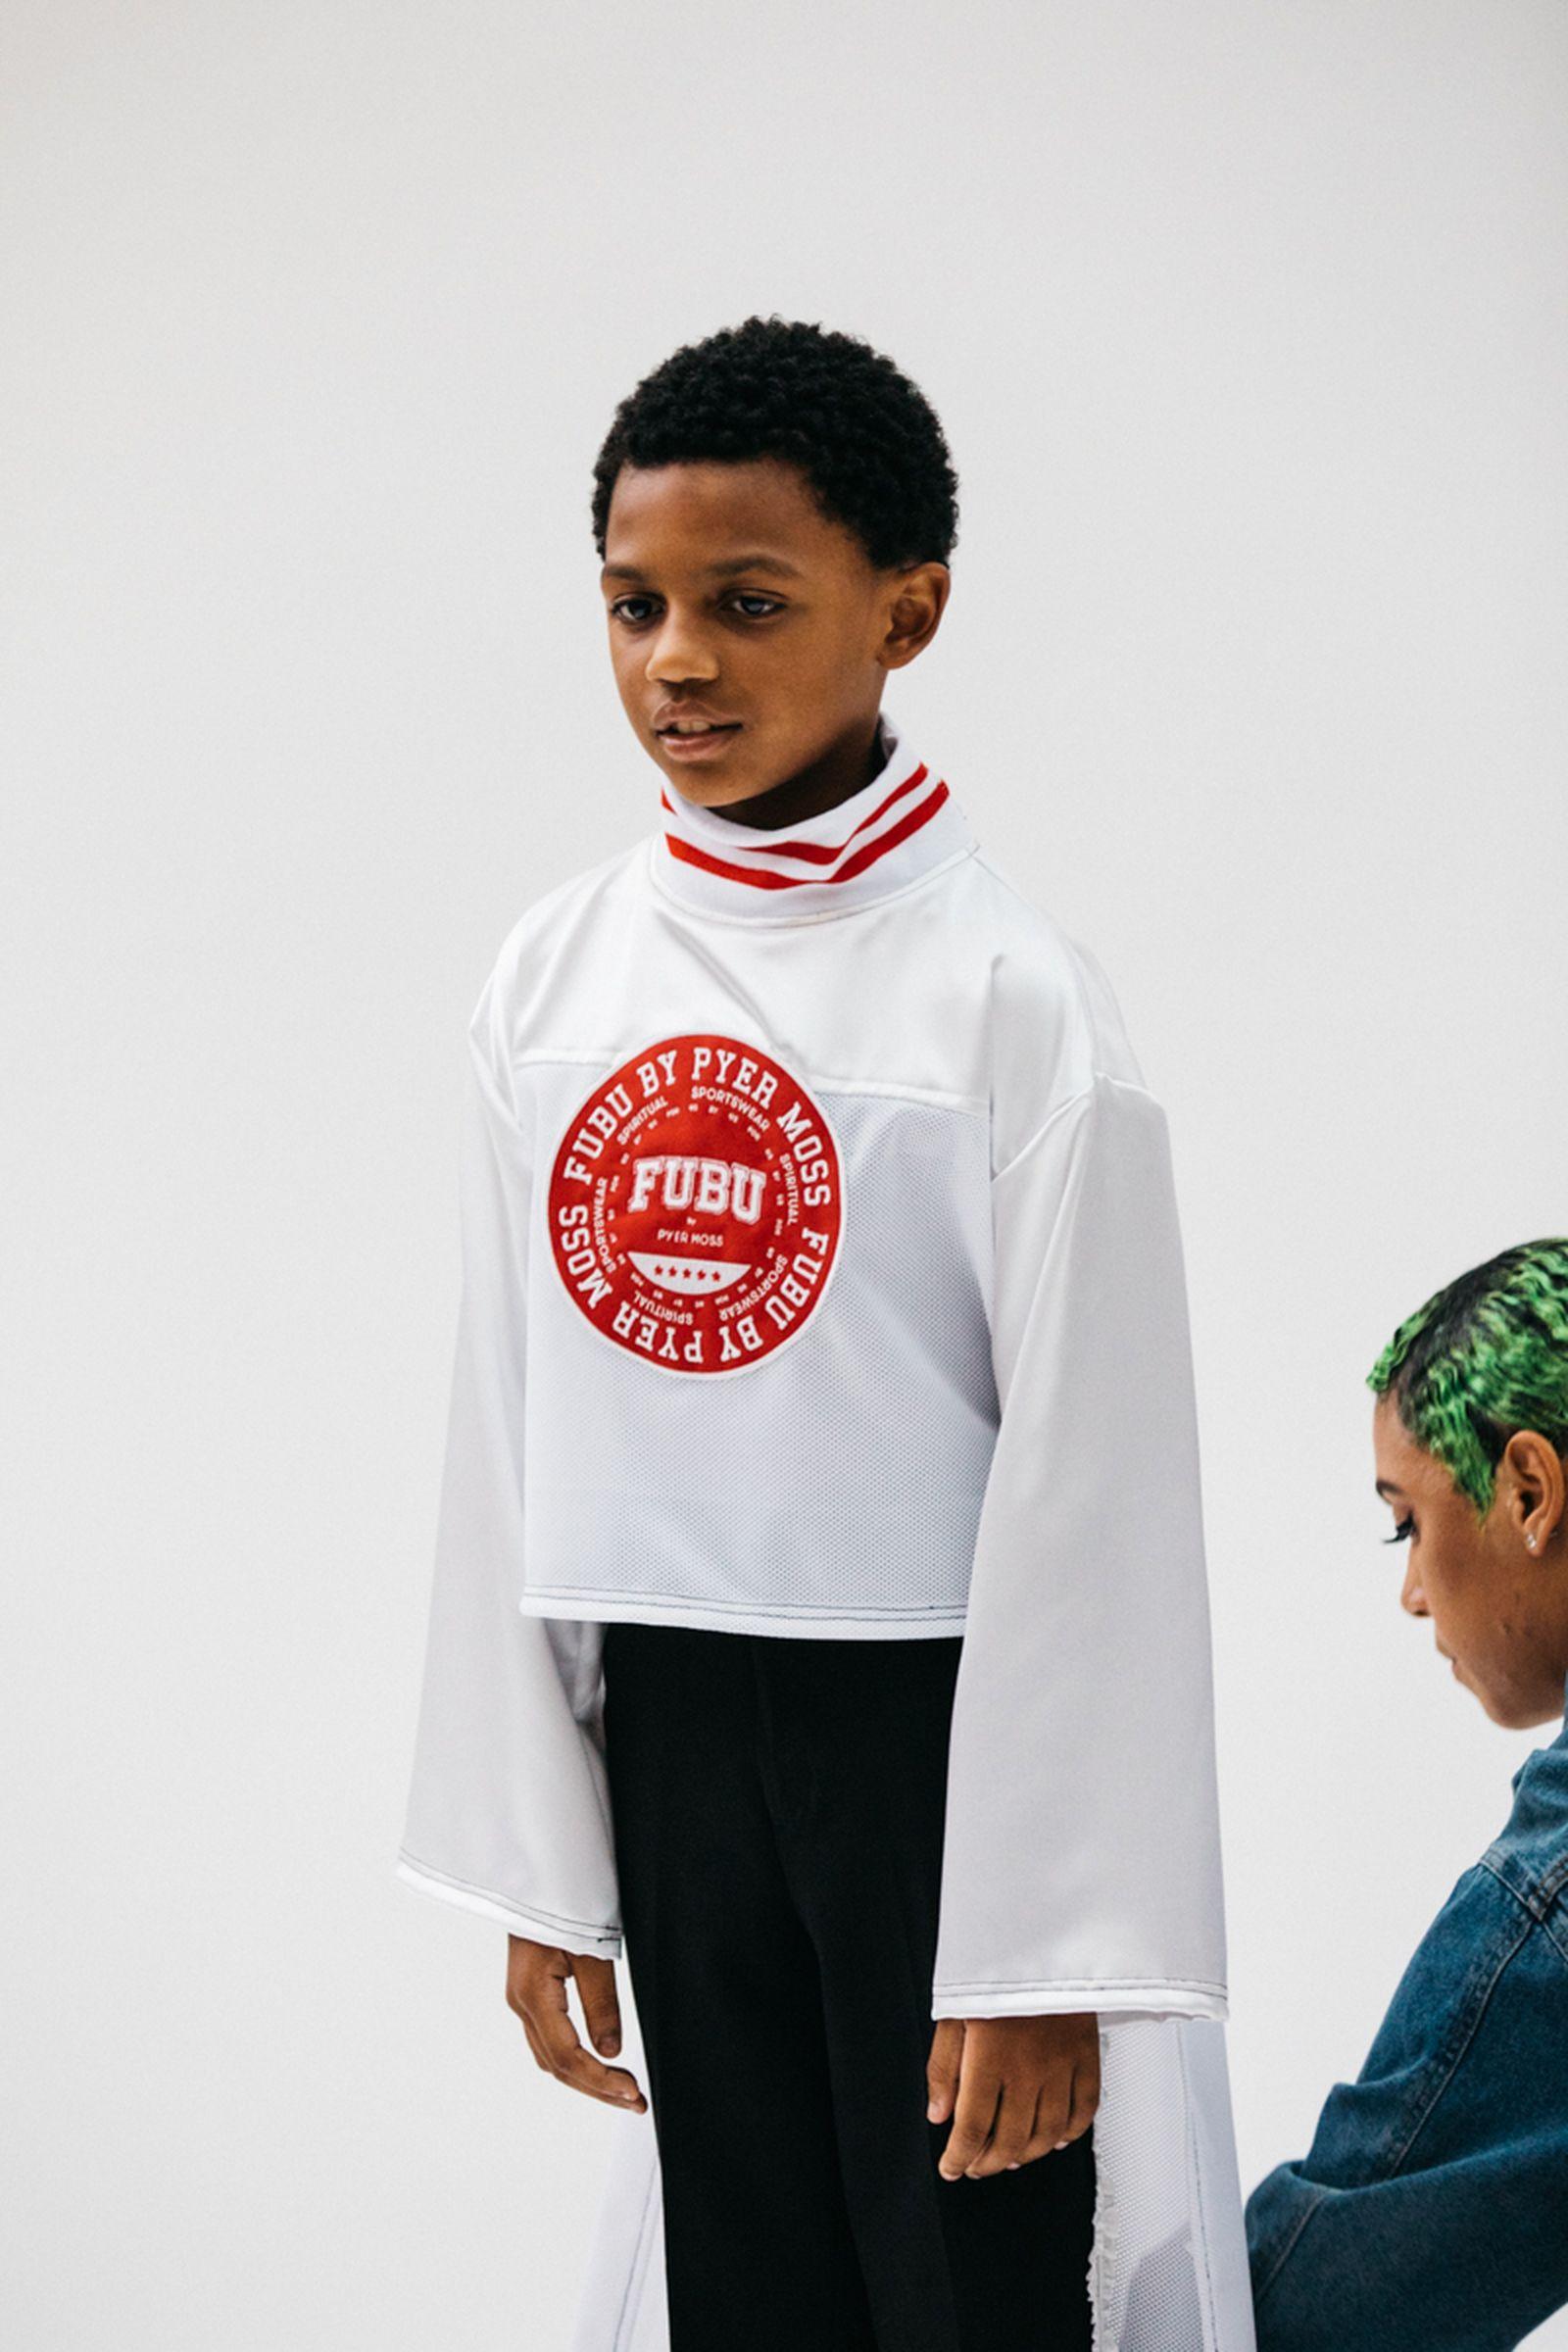 pyer moss september 2018 highsnobiety collaborations fashion shows new york fashion week